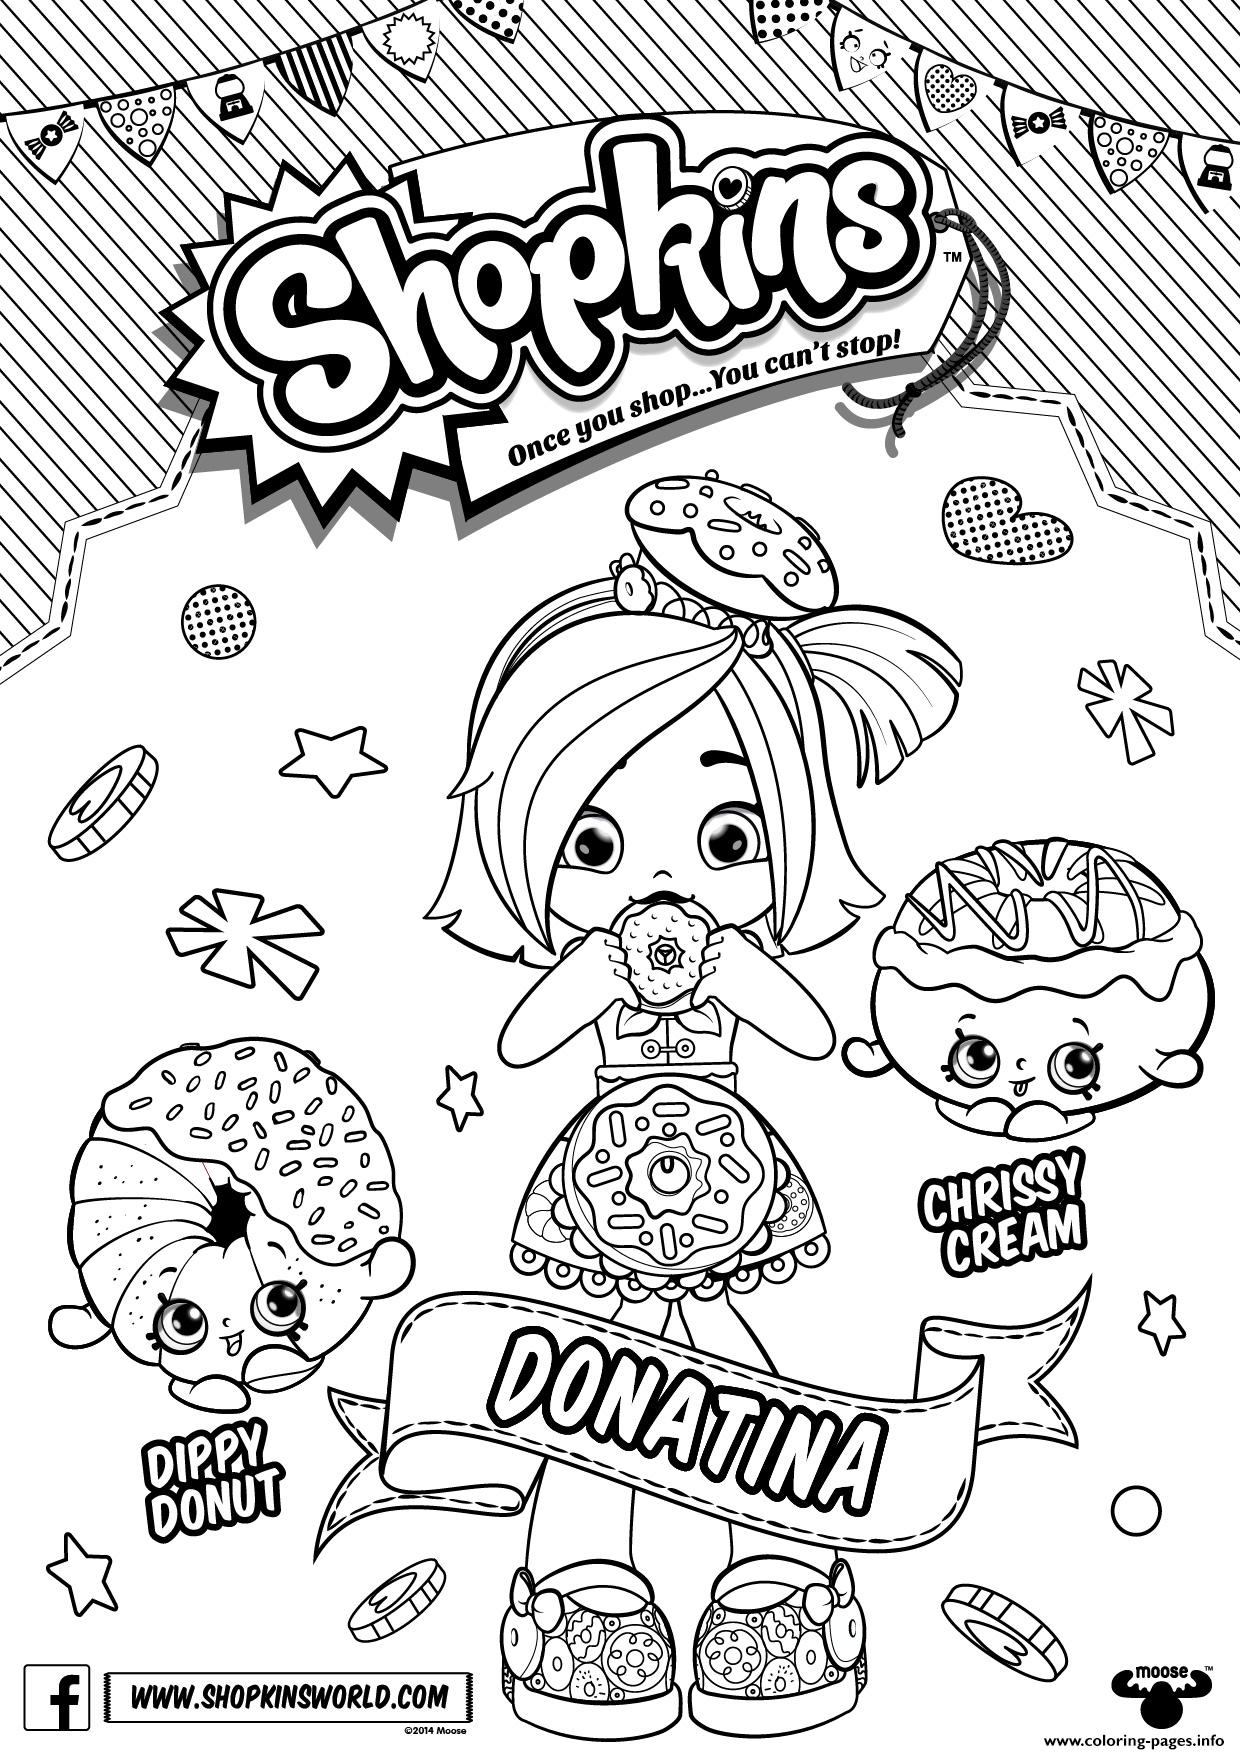 Shopkins Season 6 Doll Chef Club Donatina Coloring Pages Print Download 455 Prints